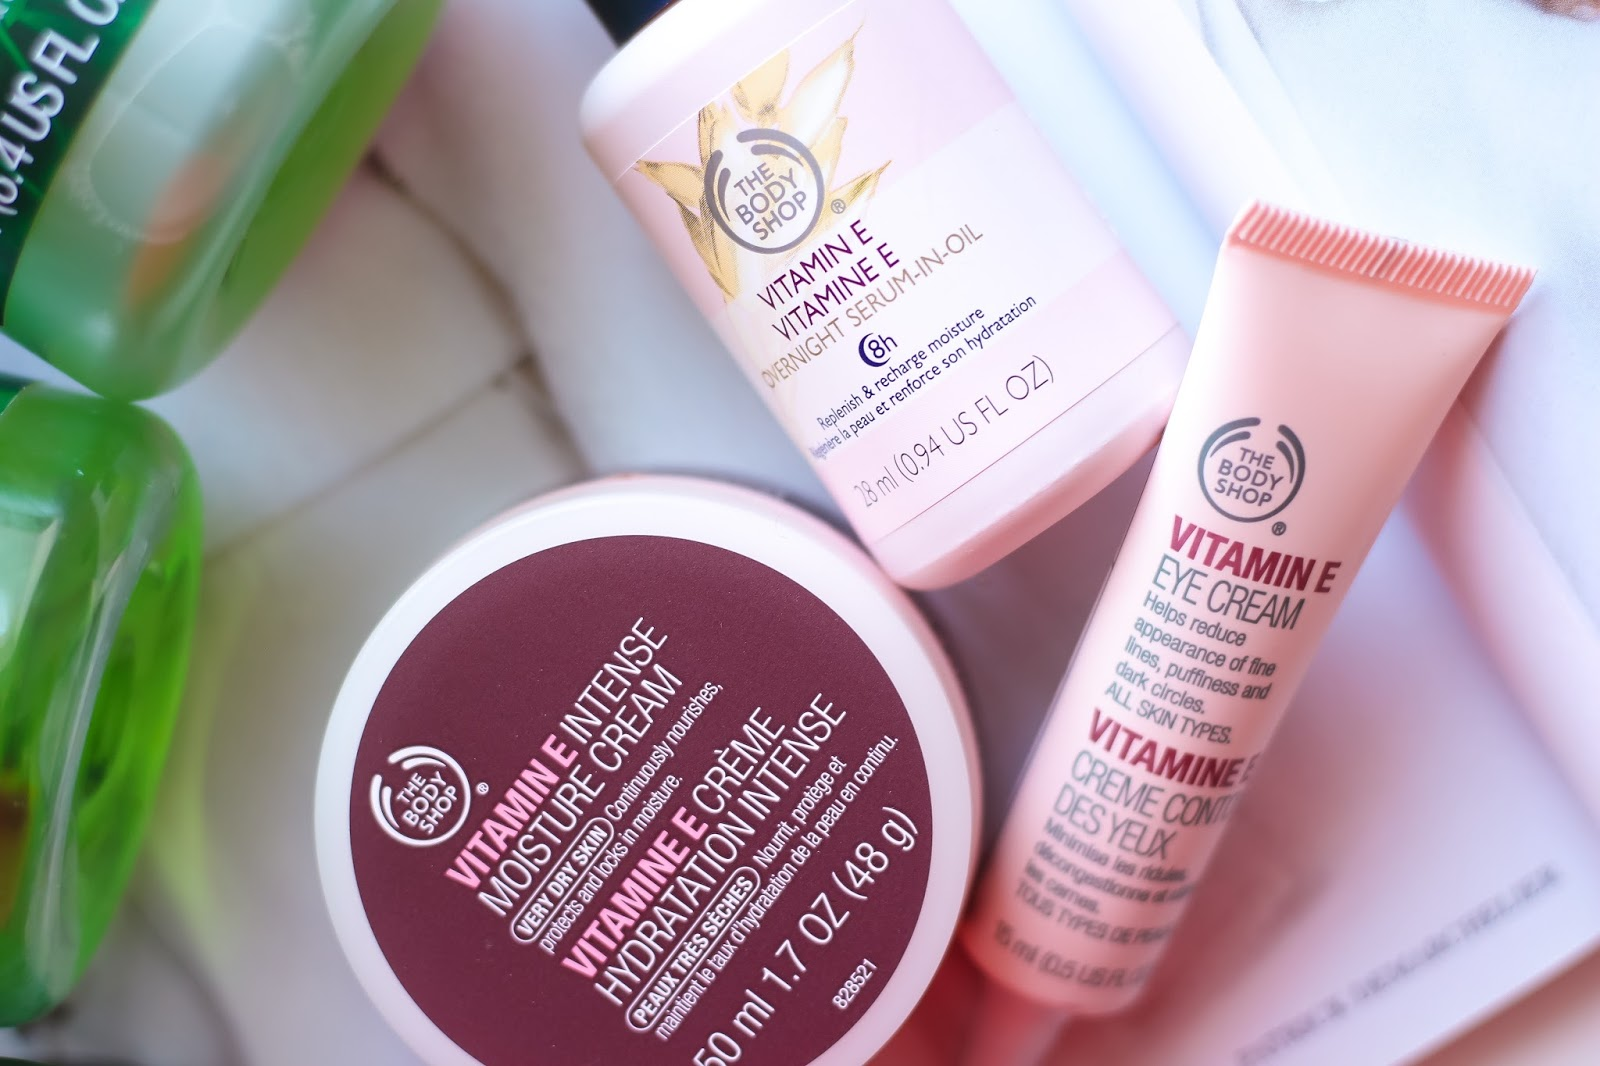 The Body Shop, The Body Shop Vitamin E Overnight Serum in Oil, The Body Shop Vitamin E Intense Moisture Cream, The Body Shop Vitamin E Eye Cream